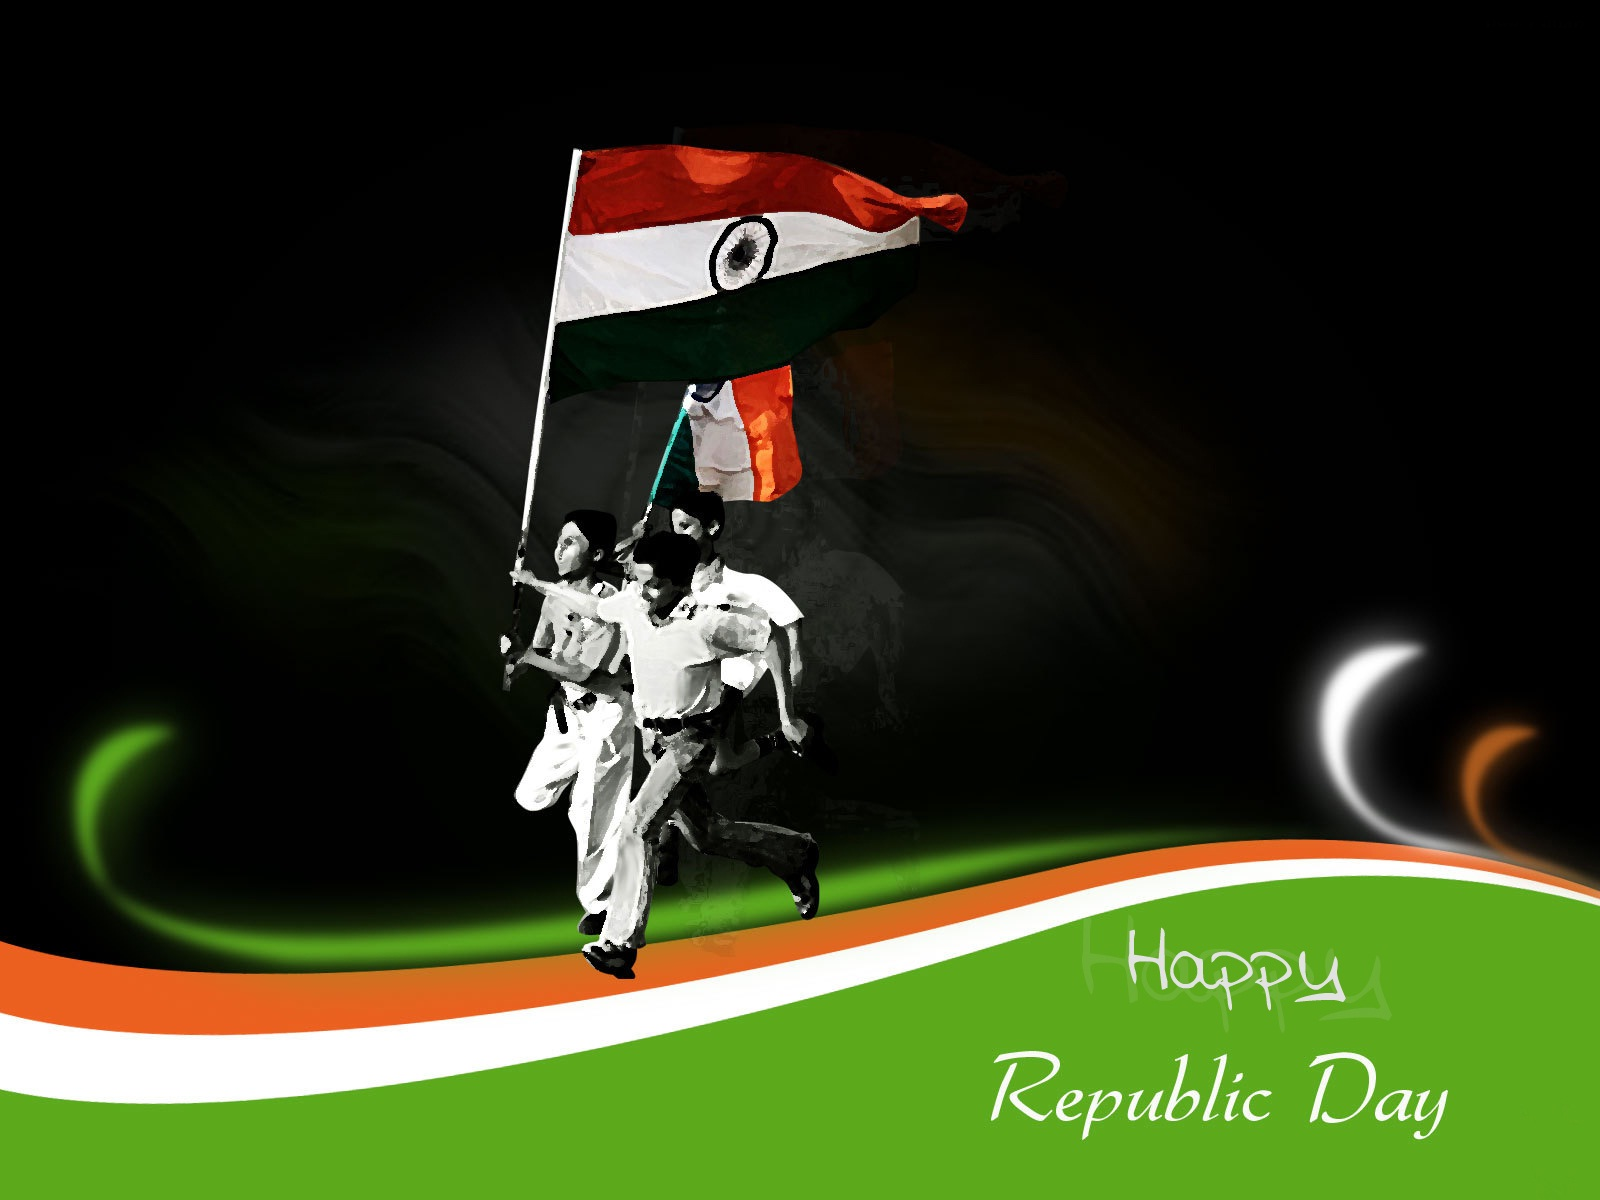 http://4.bp.blogspot.com/-eqshcGQg0gg/UQARgJM5zZI/AAAAAAAAMcY/LEiCakjDeZ4/s1600/happy-republic-day-wallpaper-021.jpg